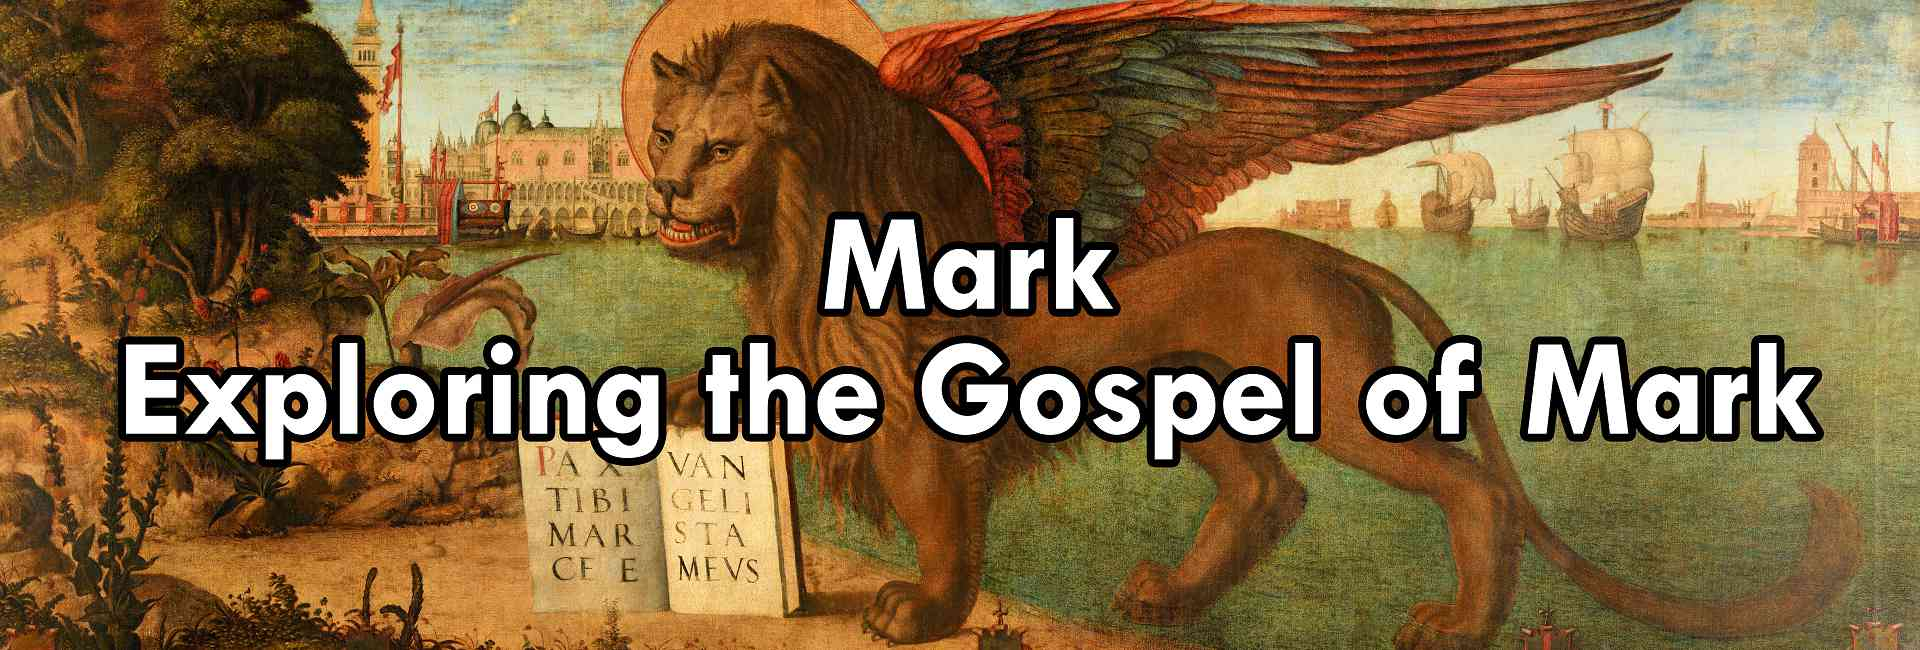 Mark. Exploring the Gospel of Mark